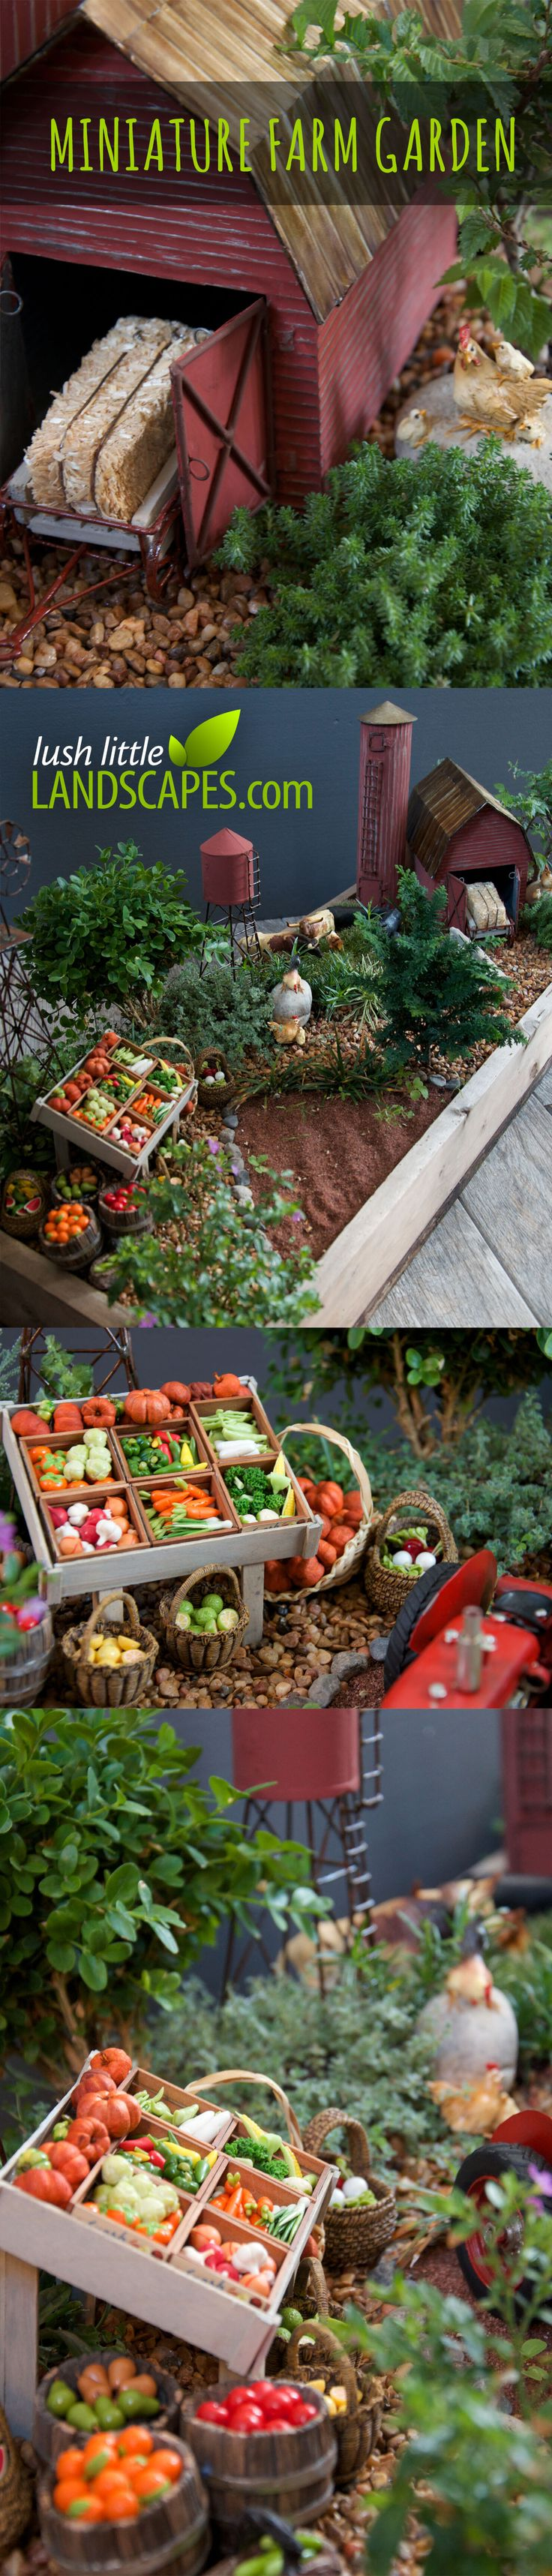 Miniature Farm Garden Preview - Farmstand with tiny fruits and vegetables in barrels and baskets, barn, windmill, silo, water tower, chickens, cattle - more to come! | Lush Little Landscapes